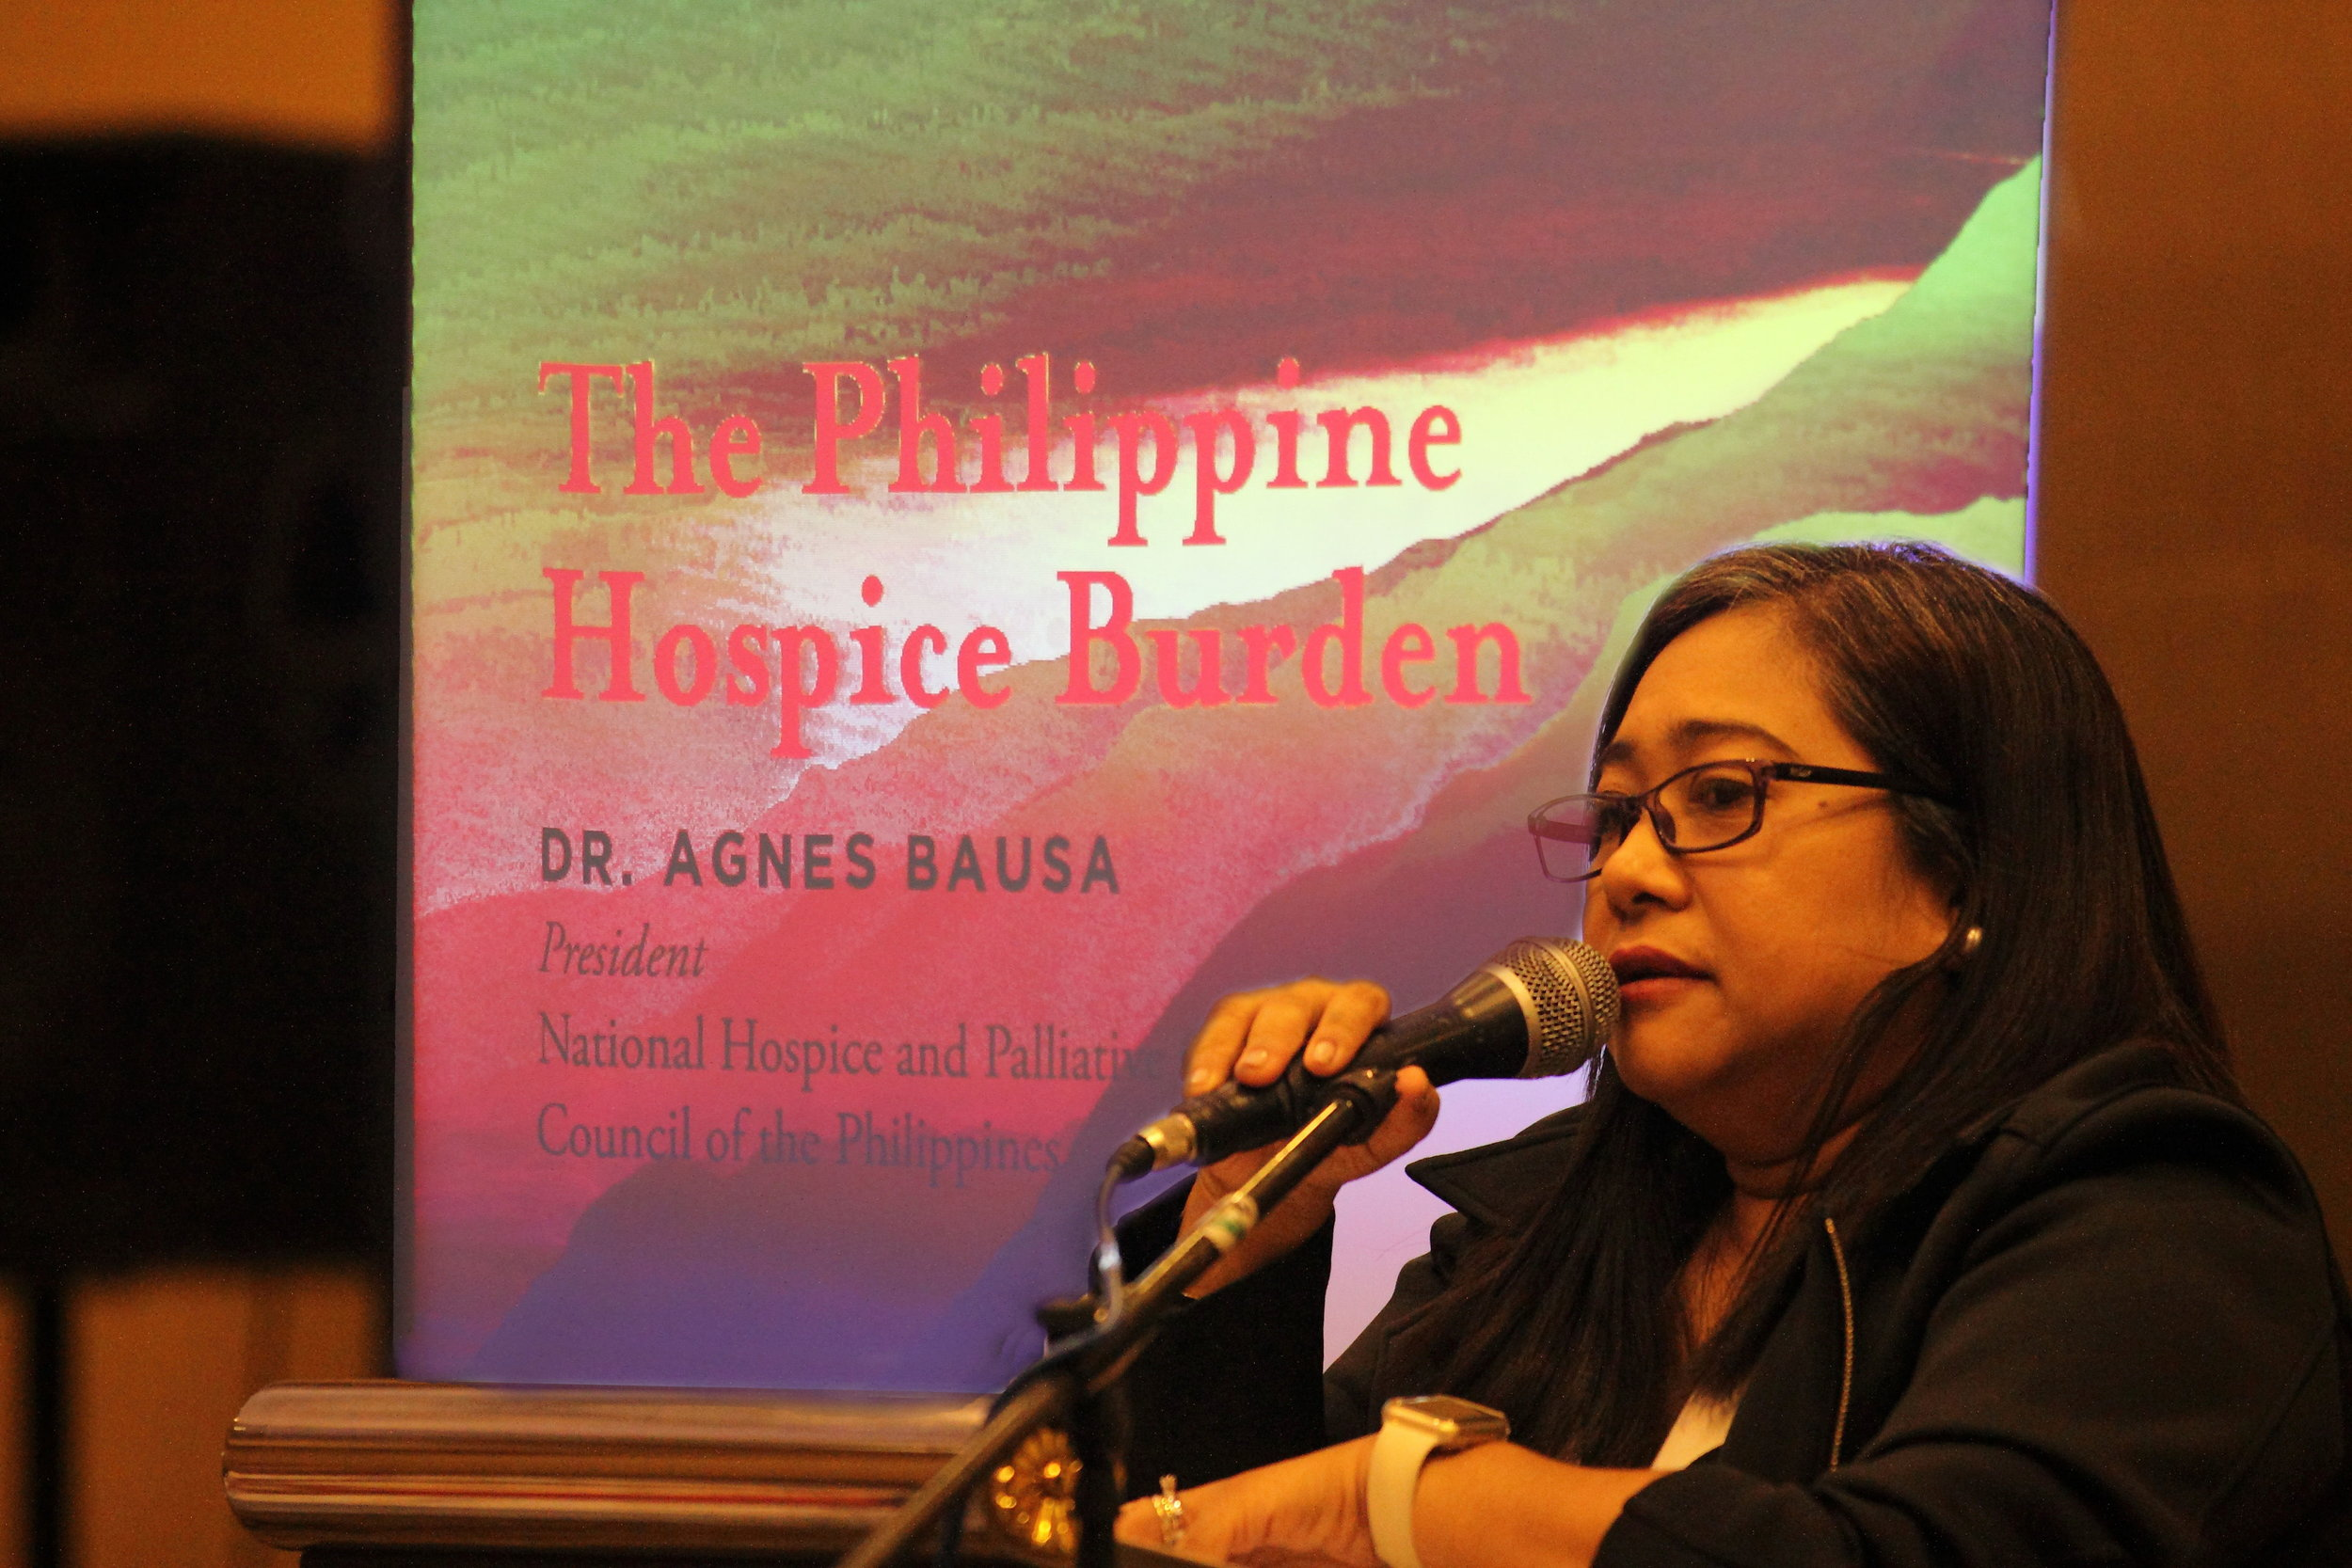 The president of the National Hospice and Palliative Care Council of the Philippines, Dr. Agnes Bausa, spoke on the burden of hospice in the Philippines.